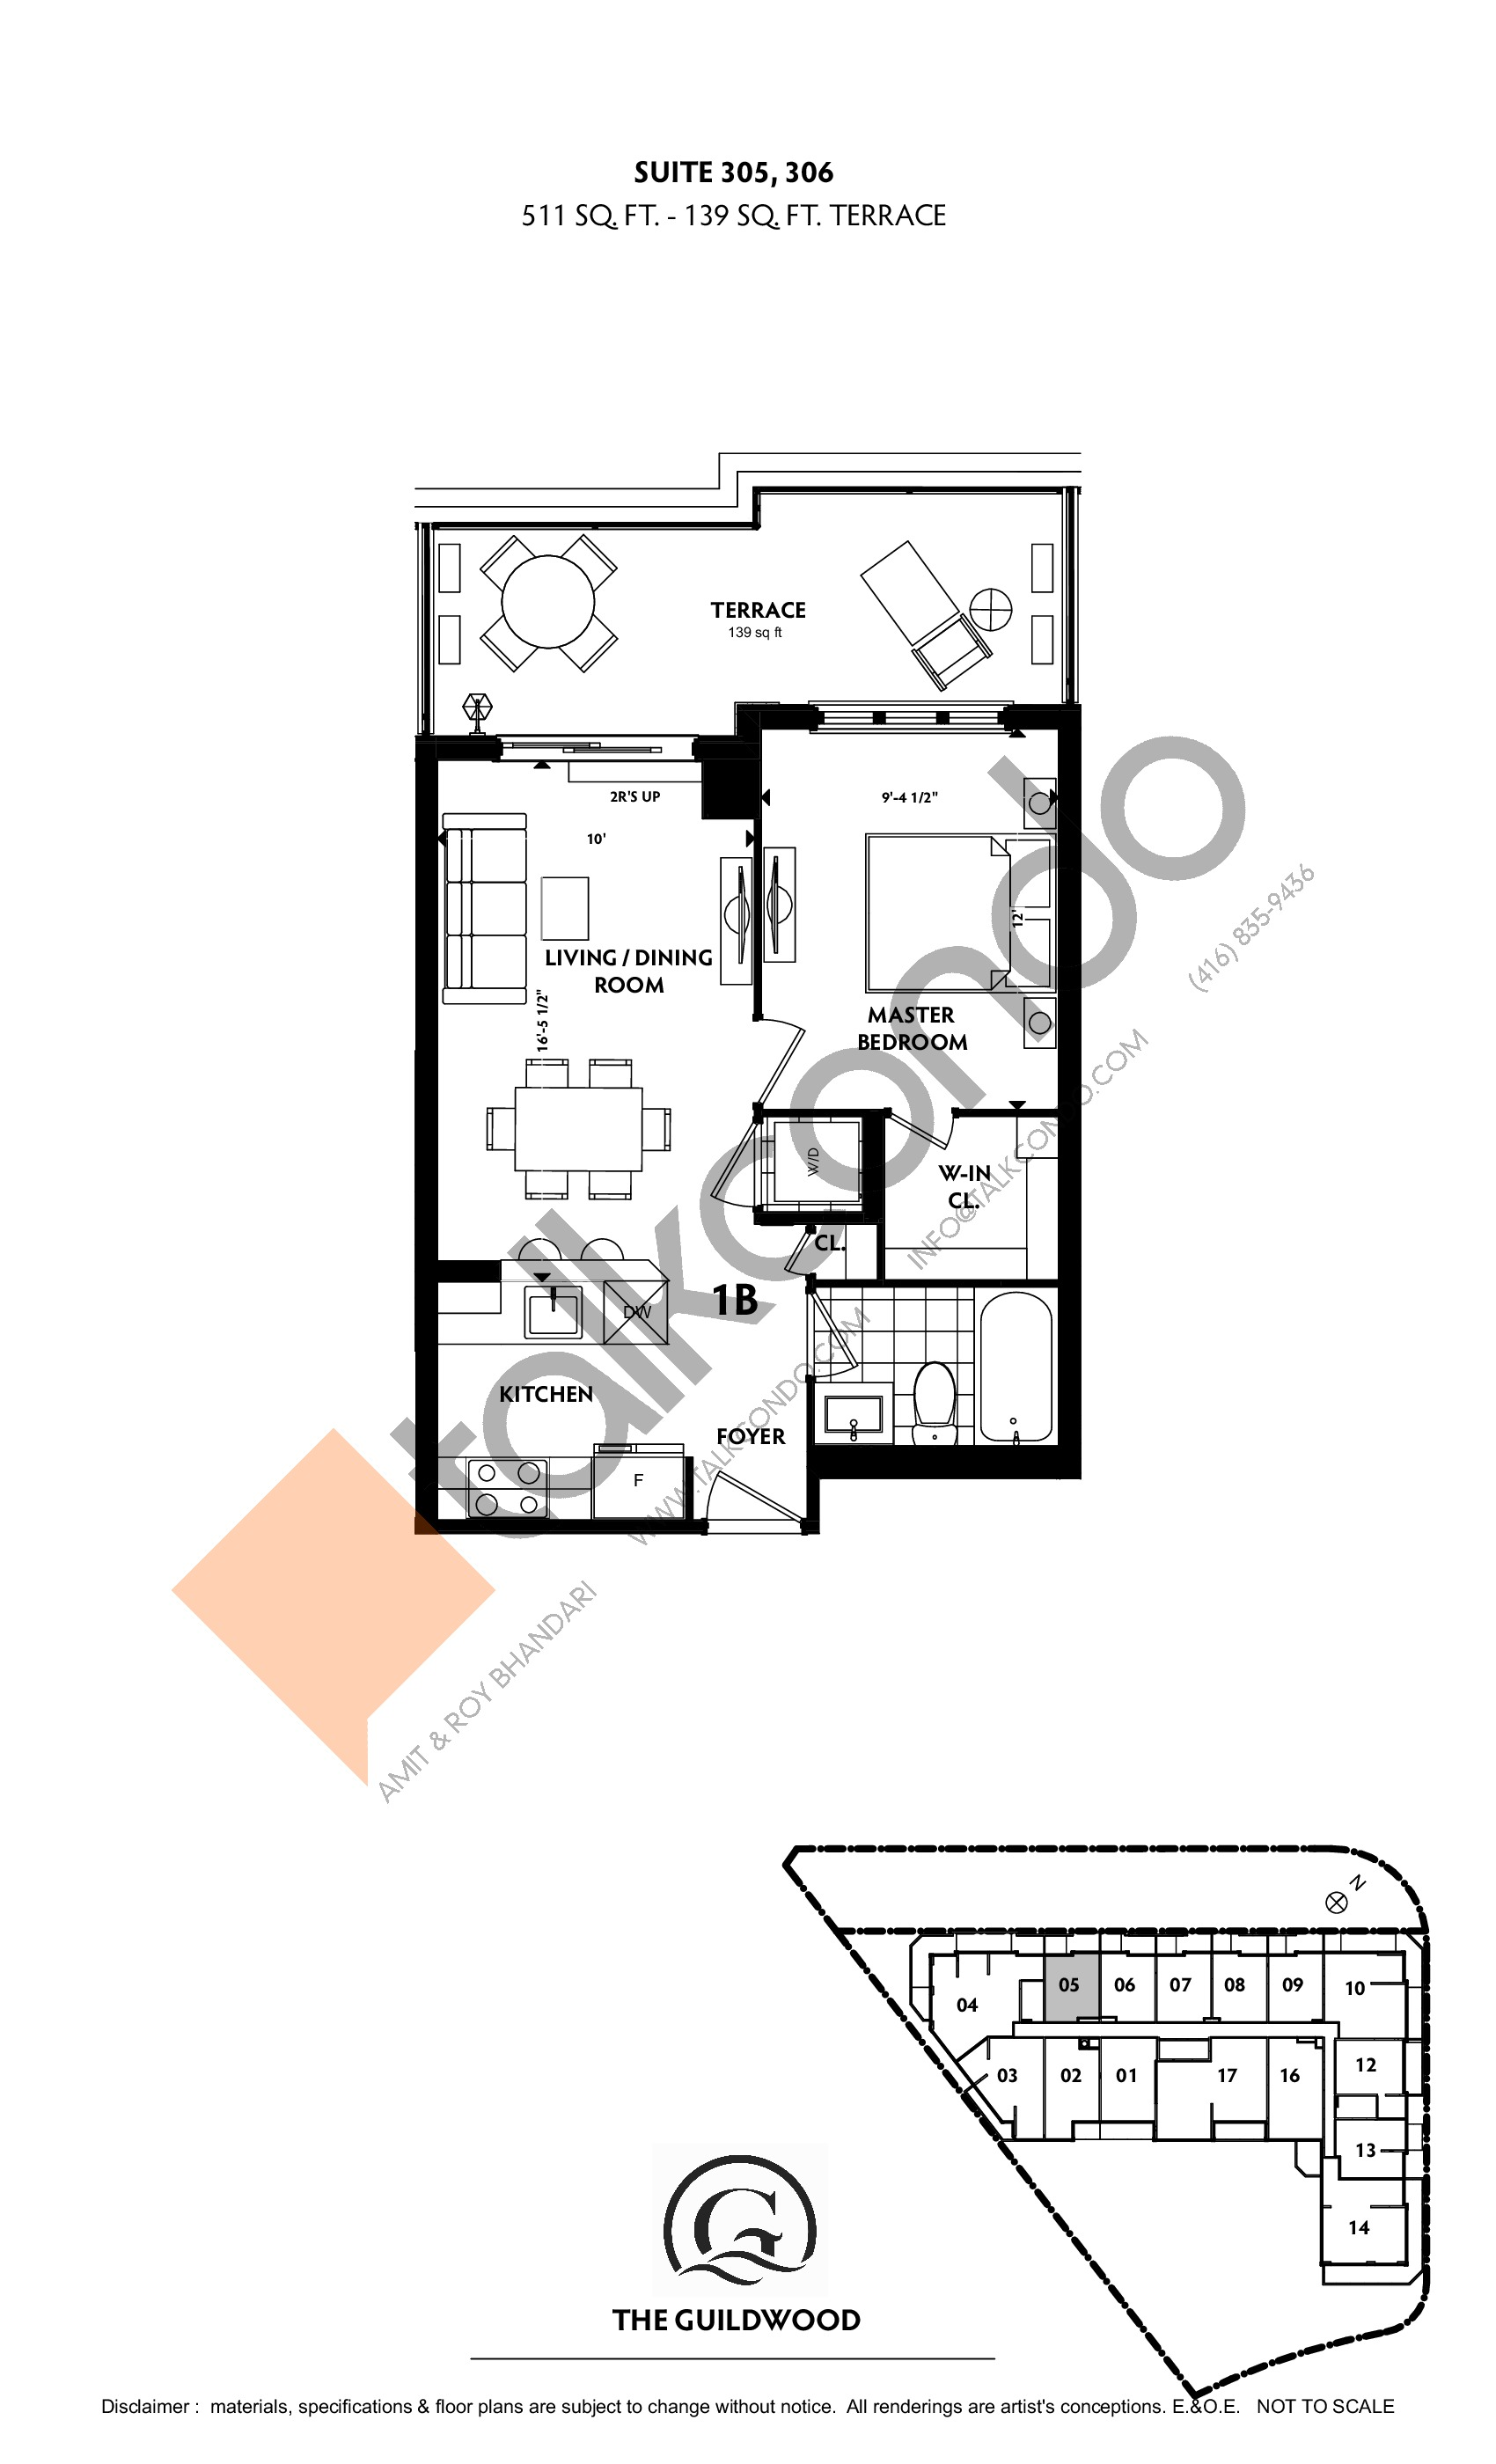 Suite 305, 306 Floor Plan at Guildwood Condos - 511 sq.ft